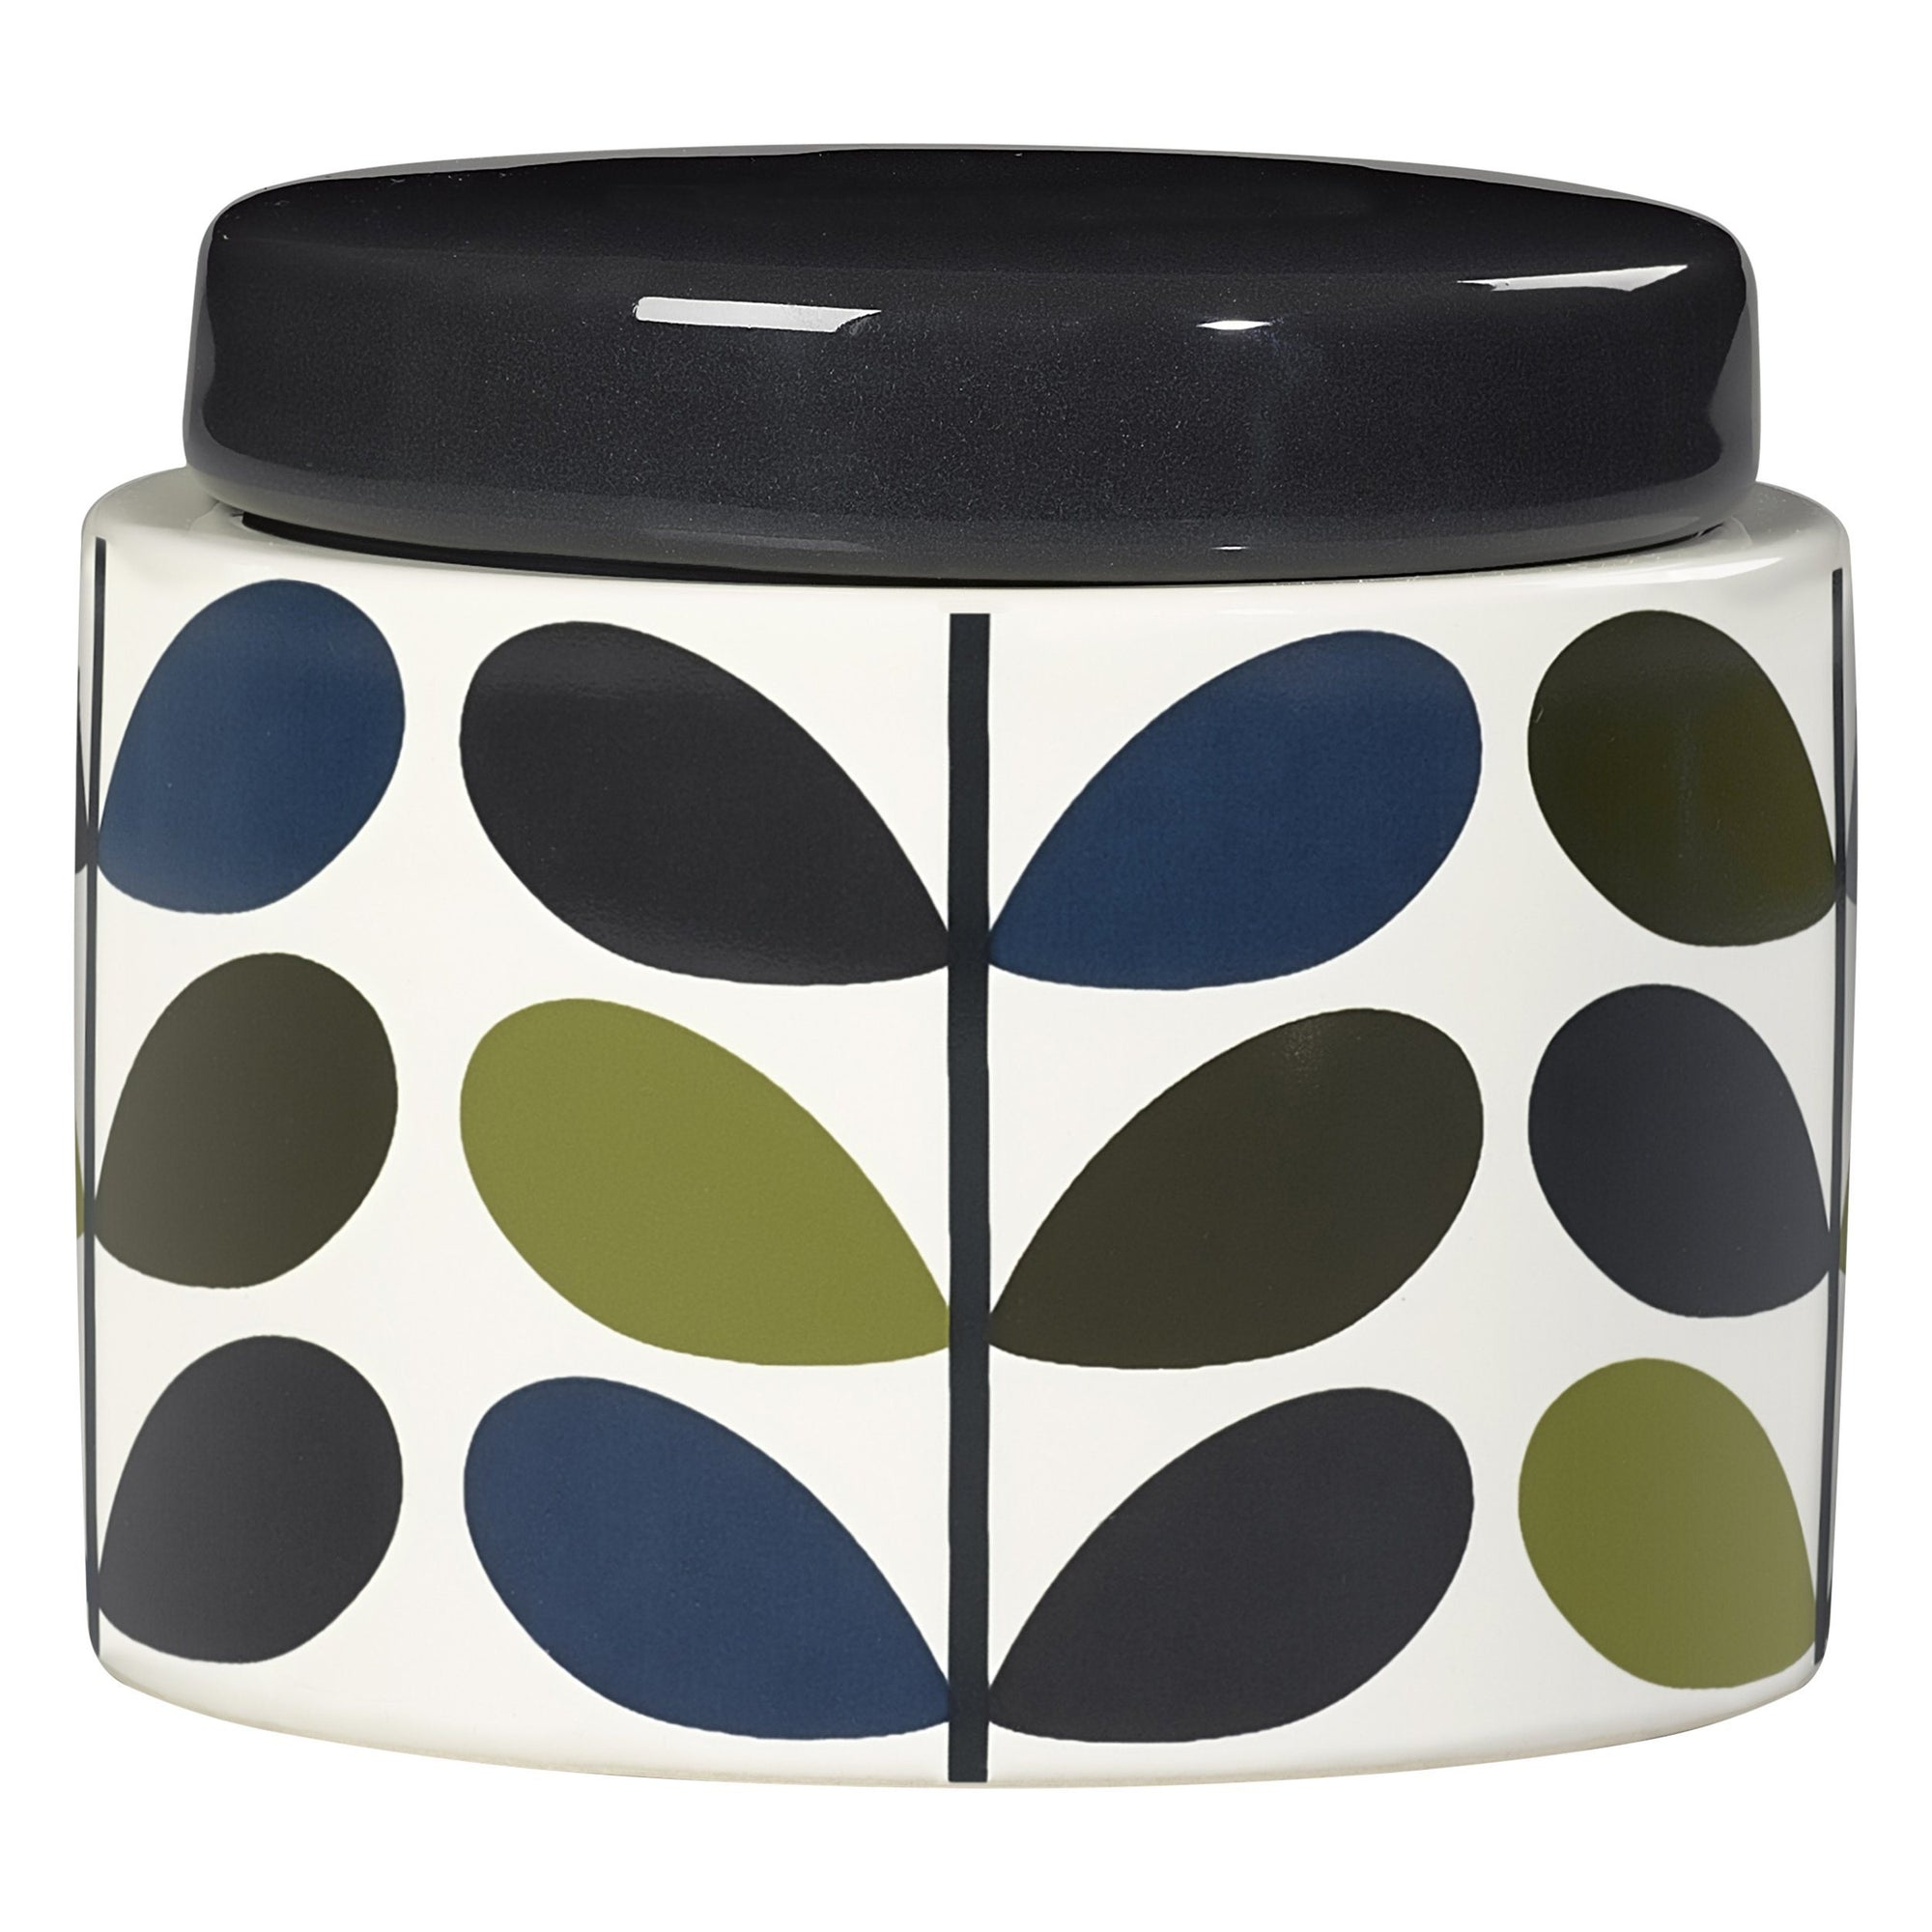 Orla Kiely Small Ceramic Multi Stem Storage Jar - Khaki/Marine - BouChic